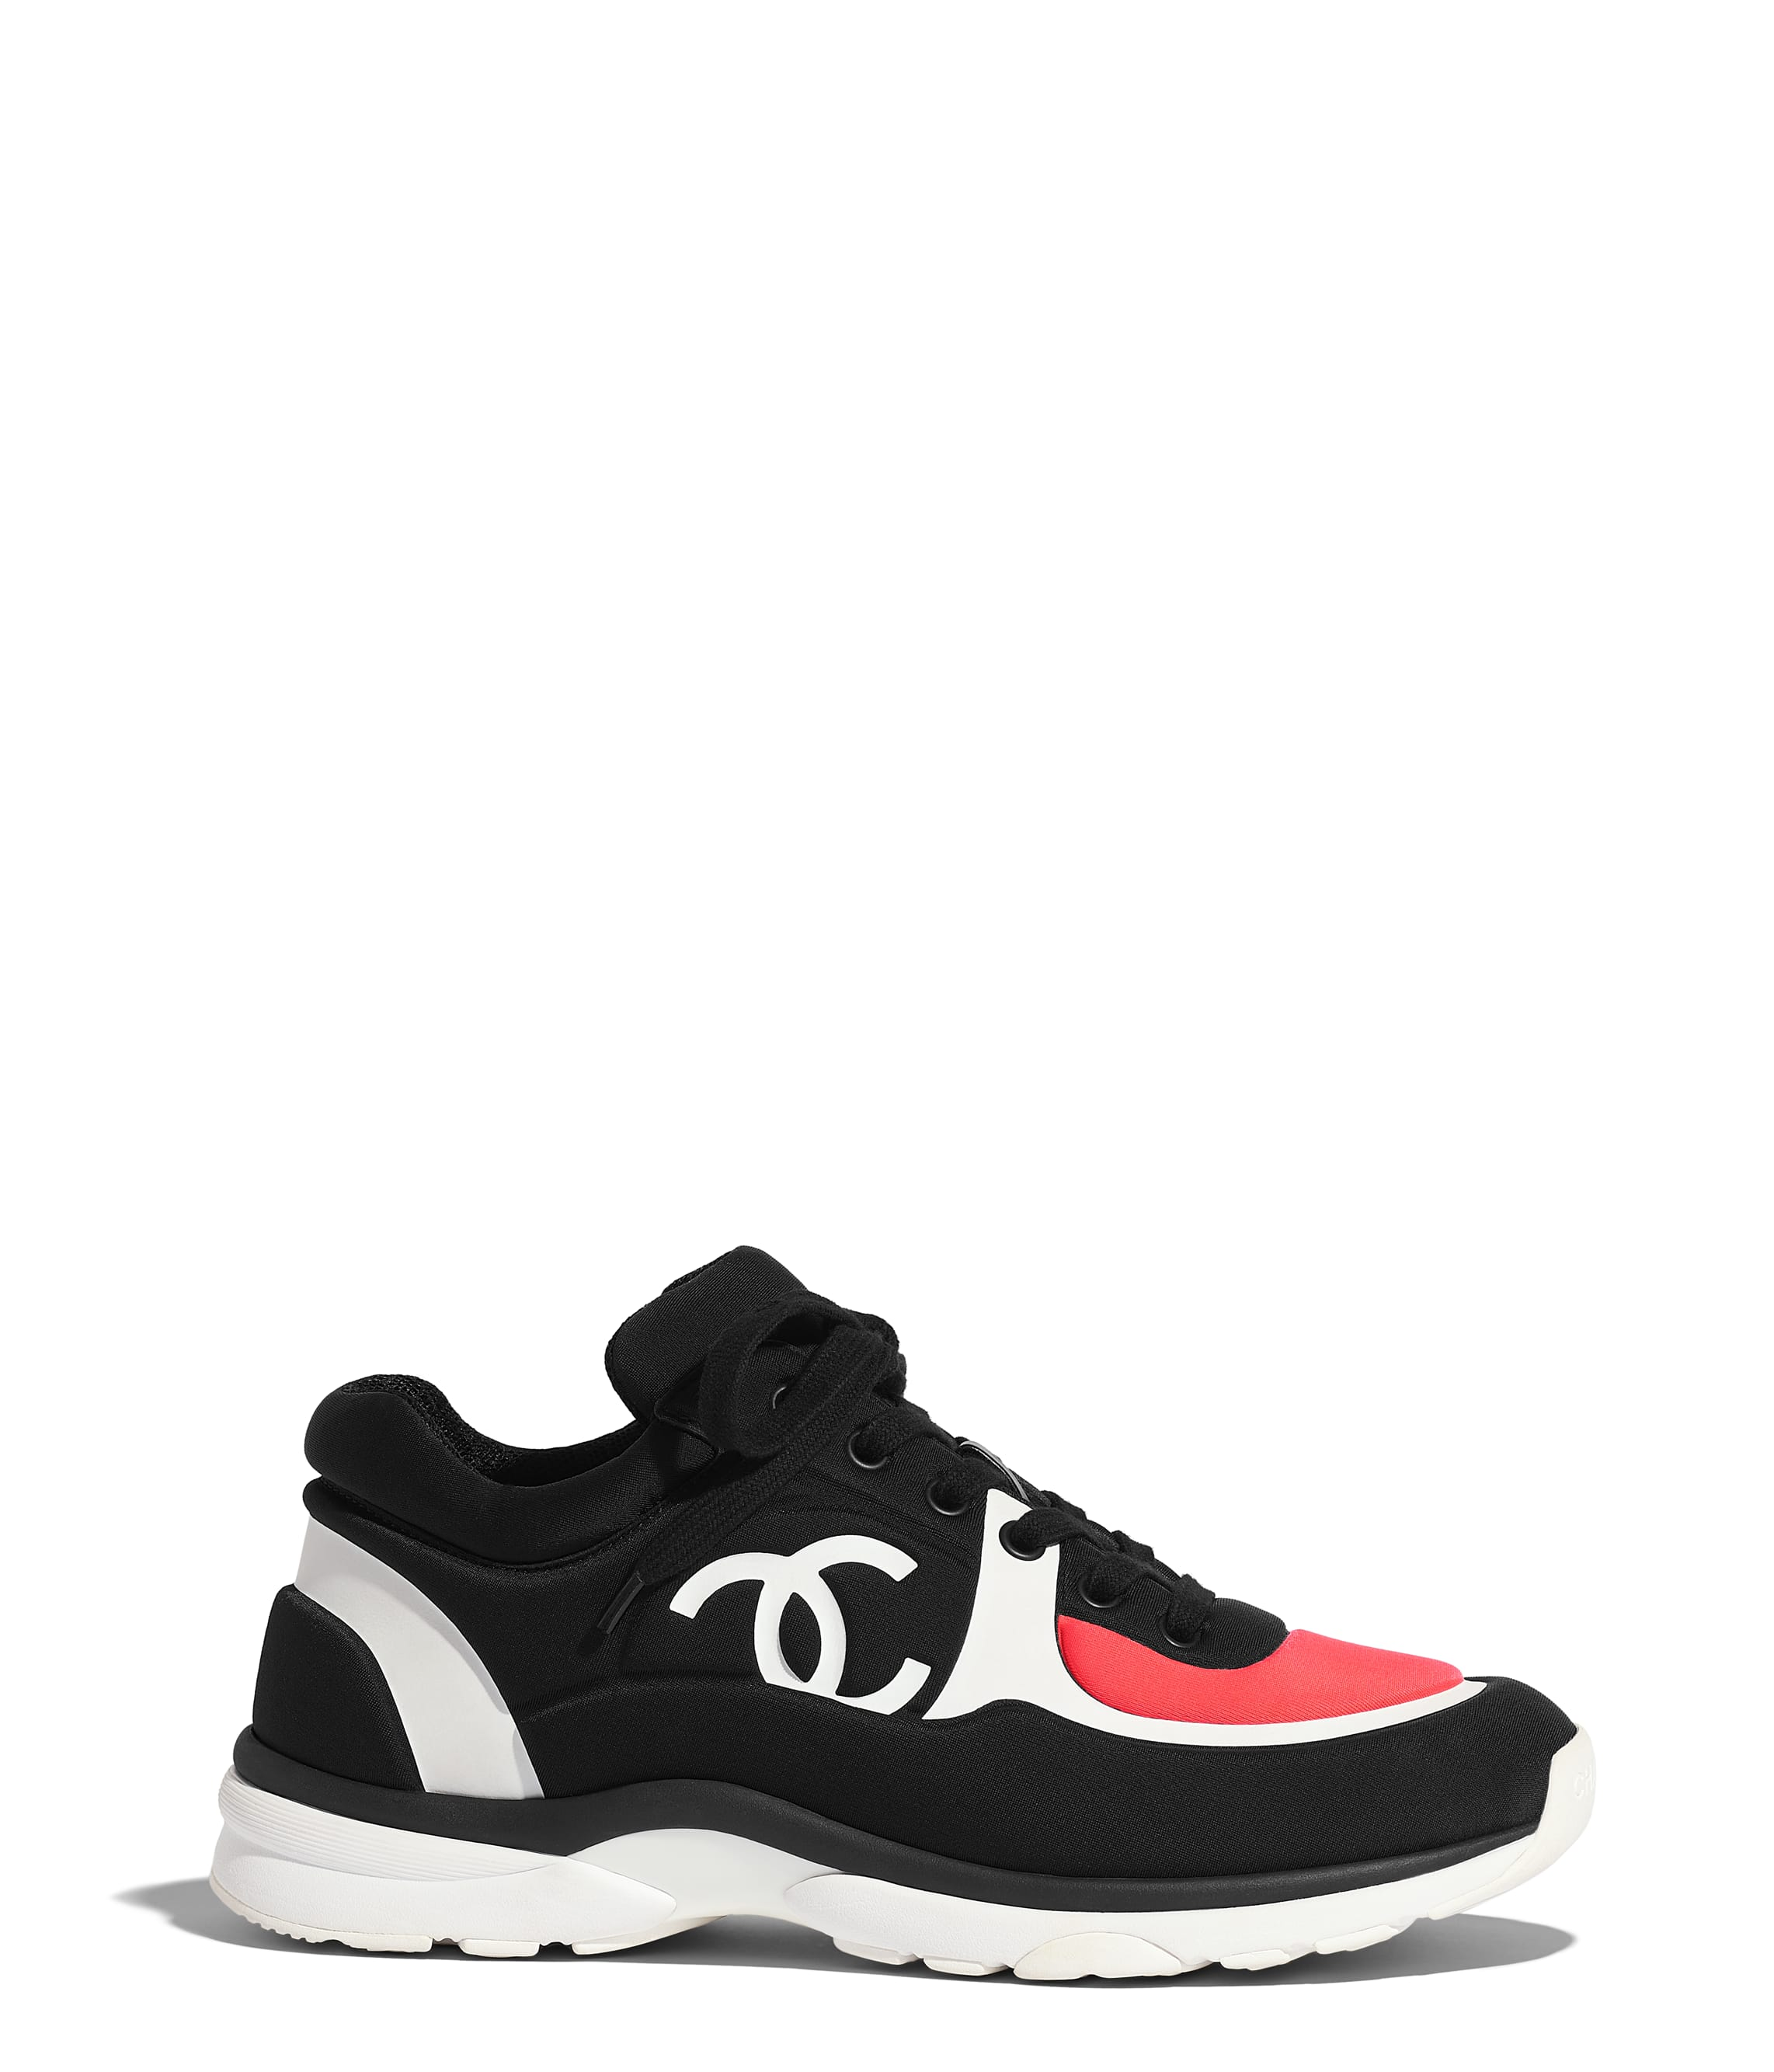 Sneakers Chanel | shoes en 2019 | Chaussure chanel